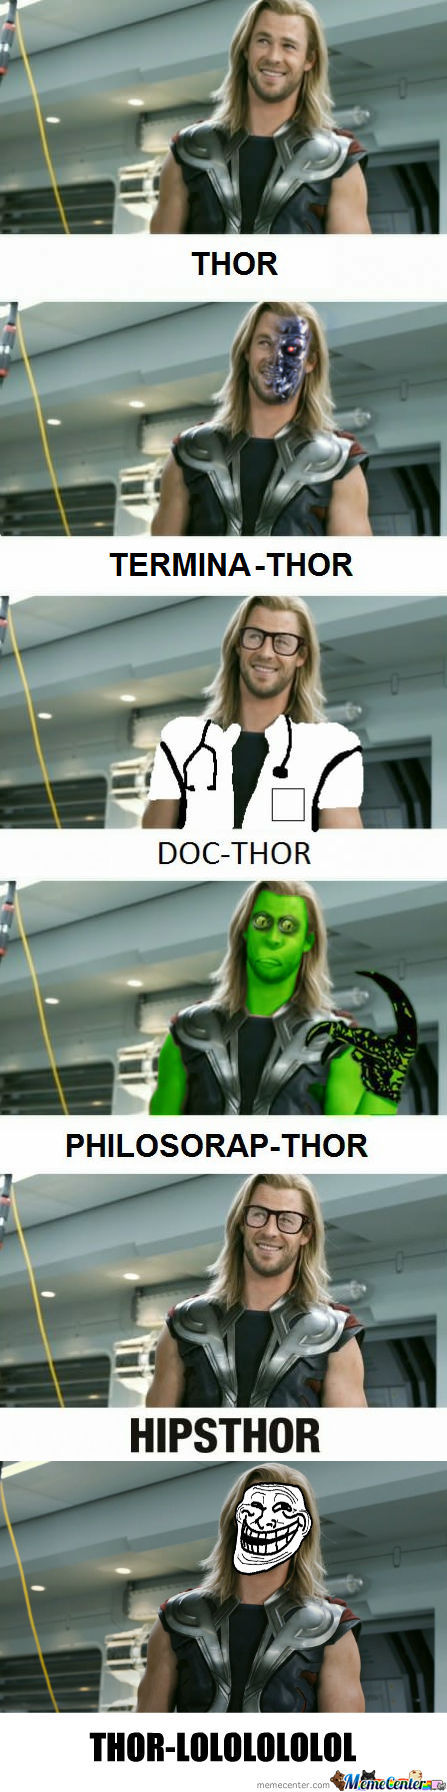 [RMX] Just Thor.